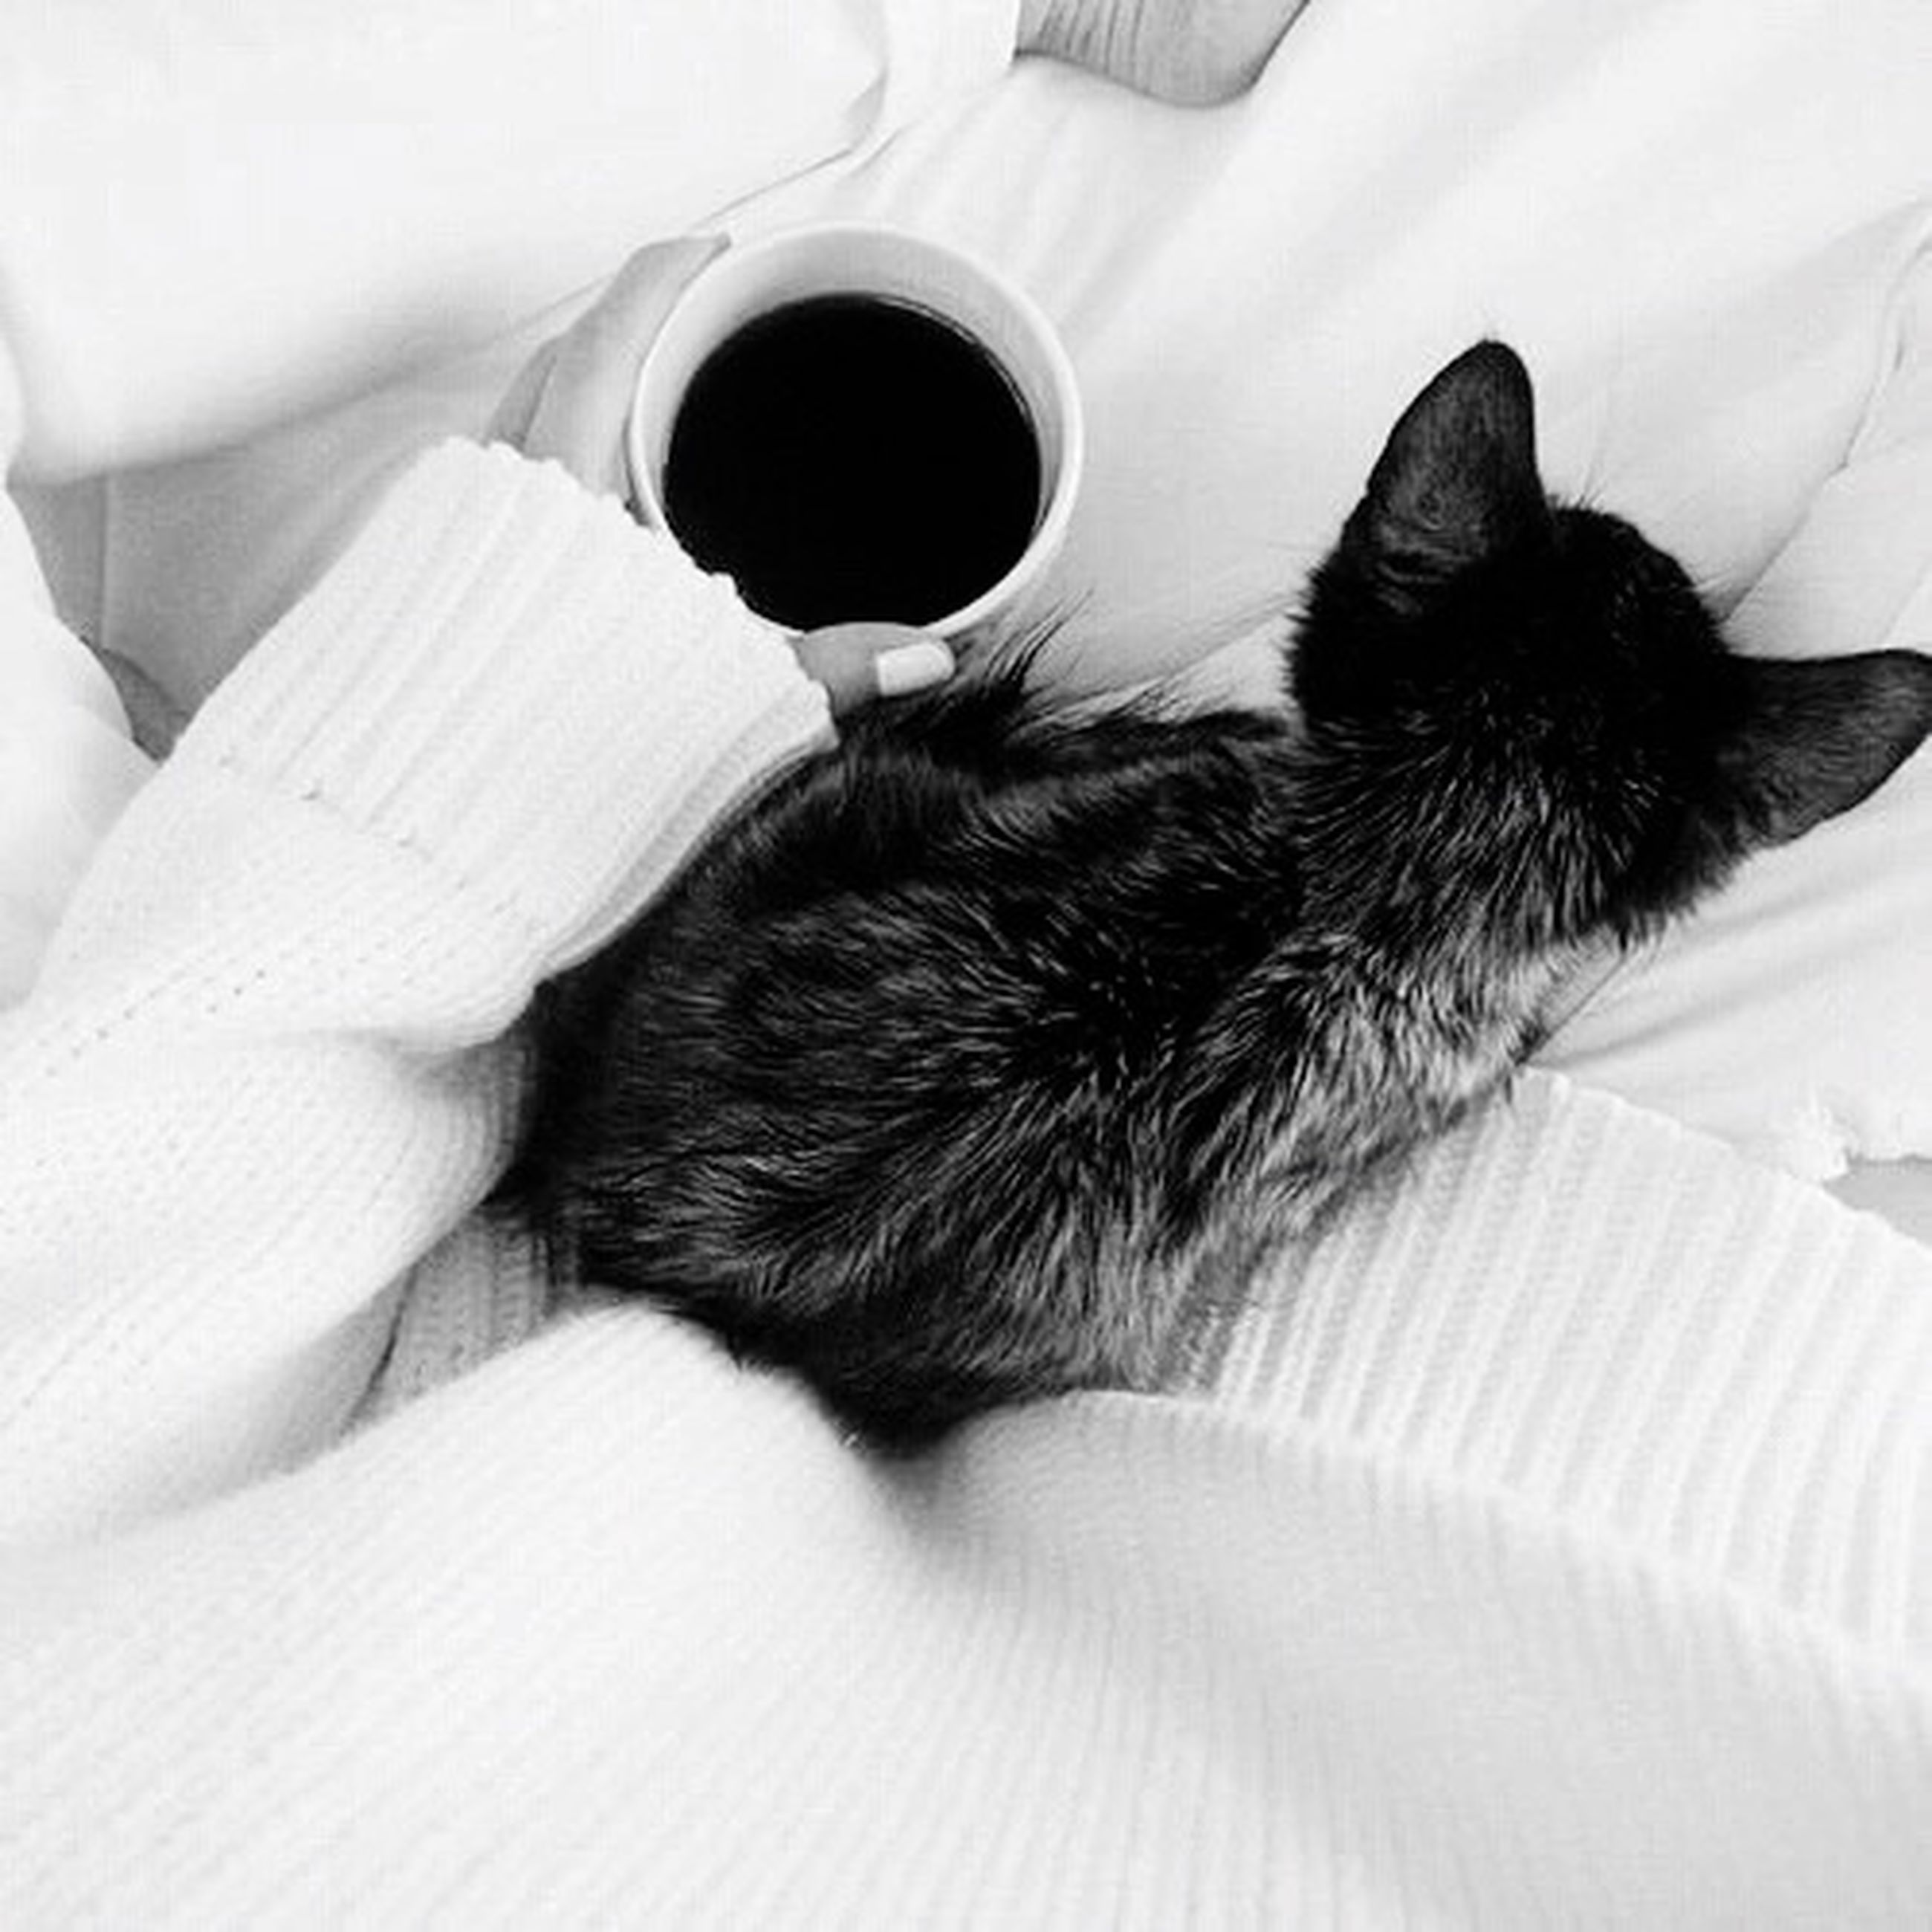 indoors, animal themes, one animal, pets, domestic animals, domestic cat, mammal, cat, bed, relaxation, high angle view, close-up, feline, home interior, black color, resting, sleeping, whisker, home, no people